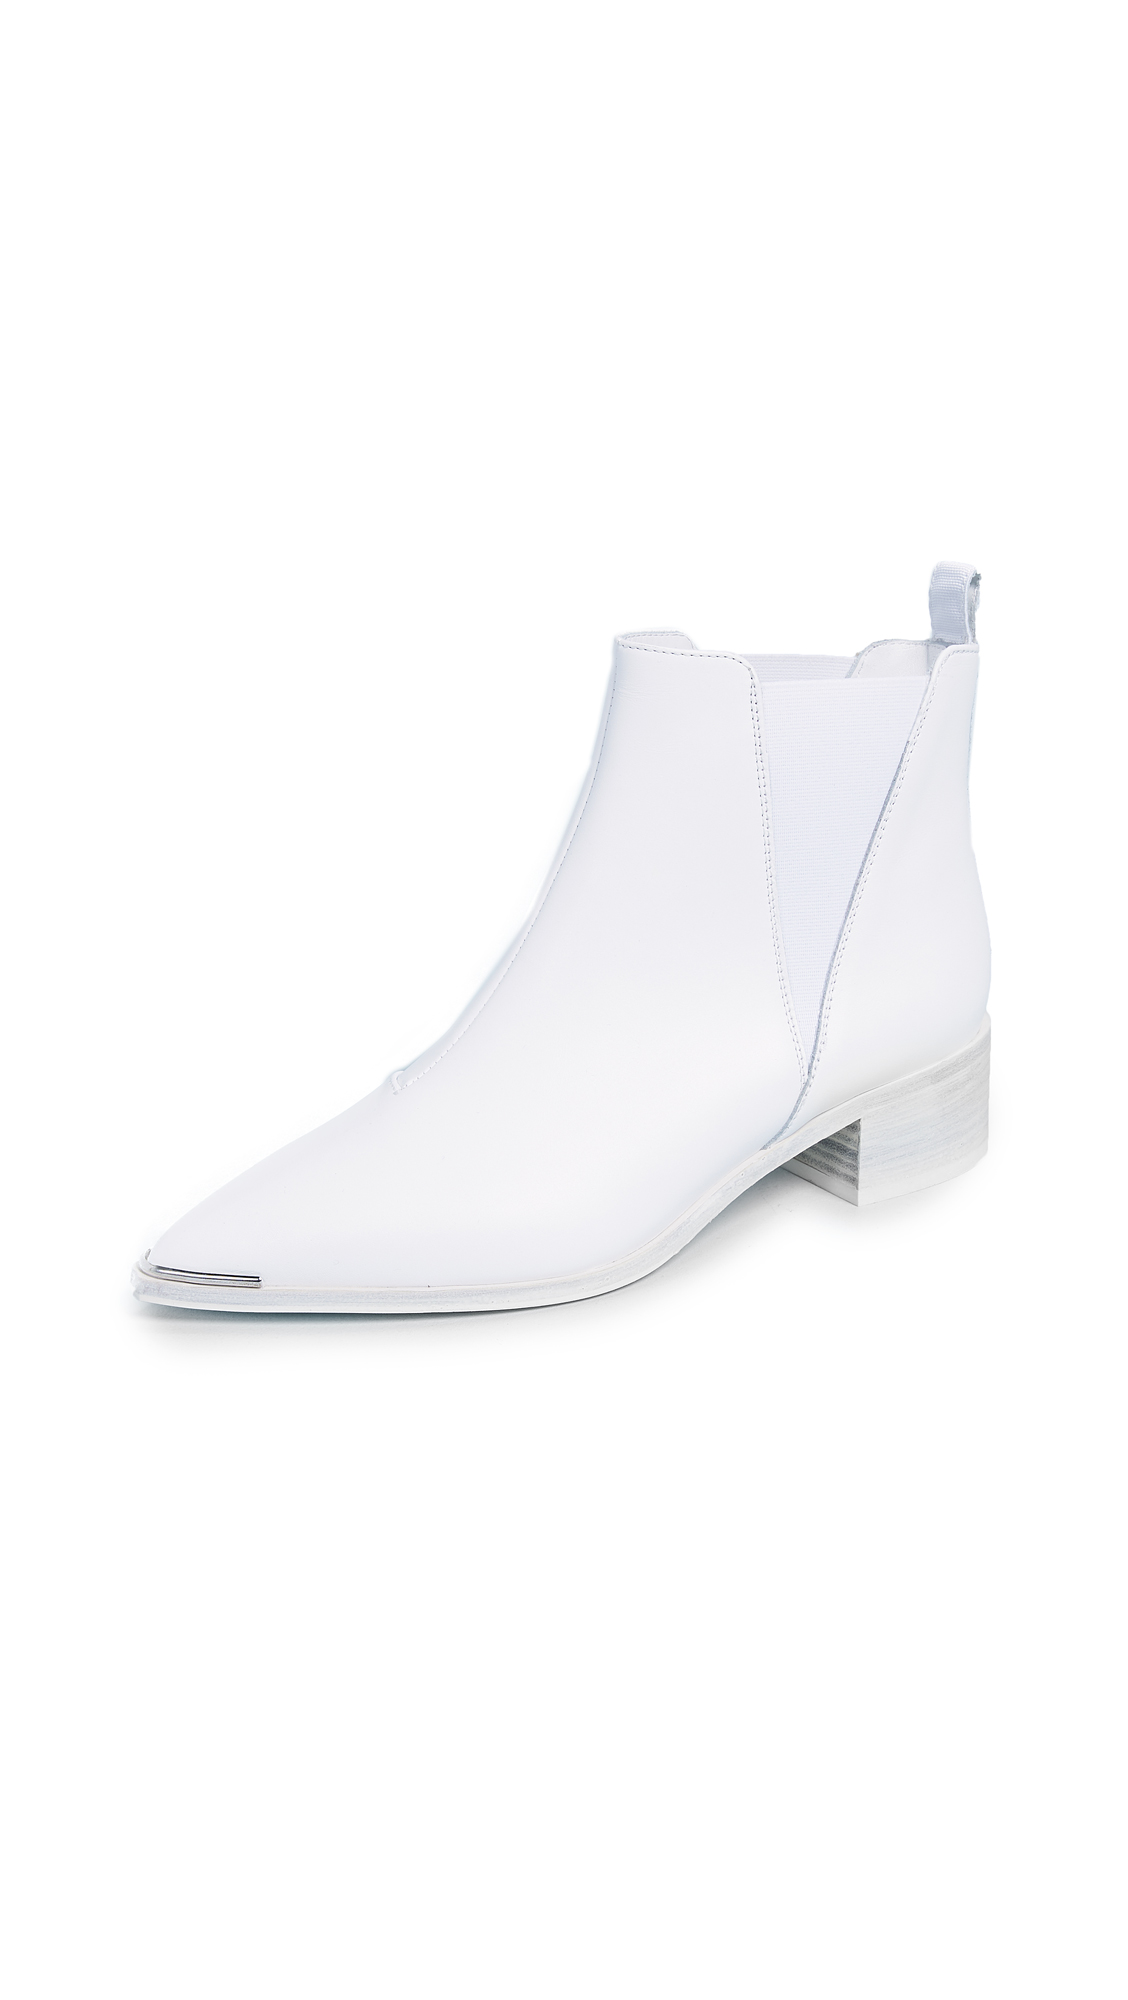 Acne Studios Jensen Booties - White